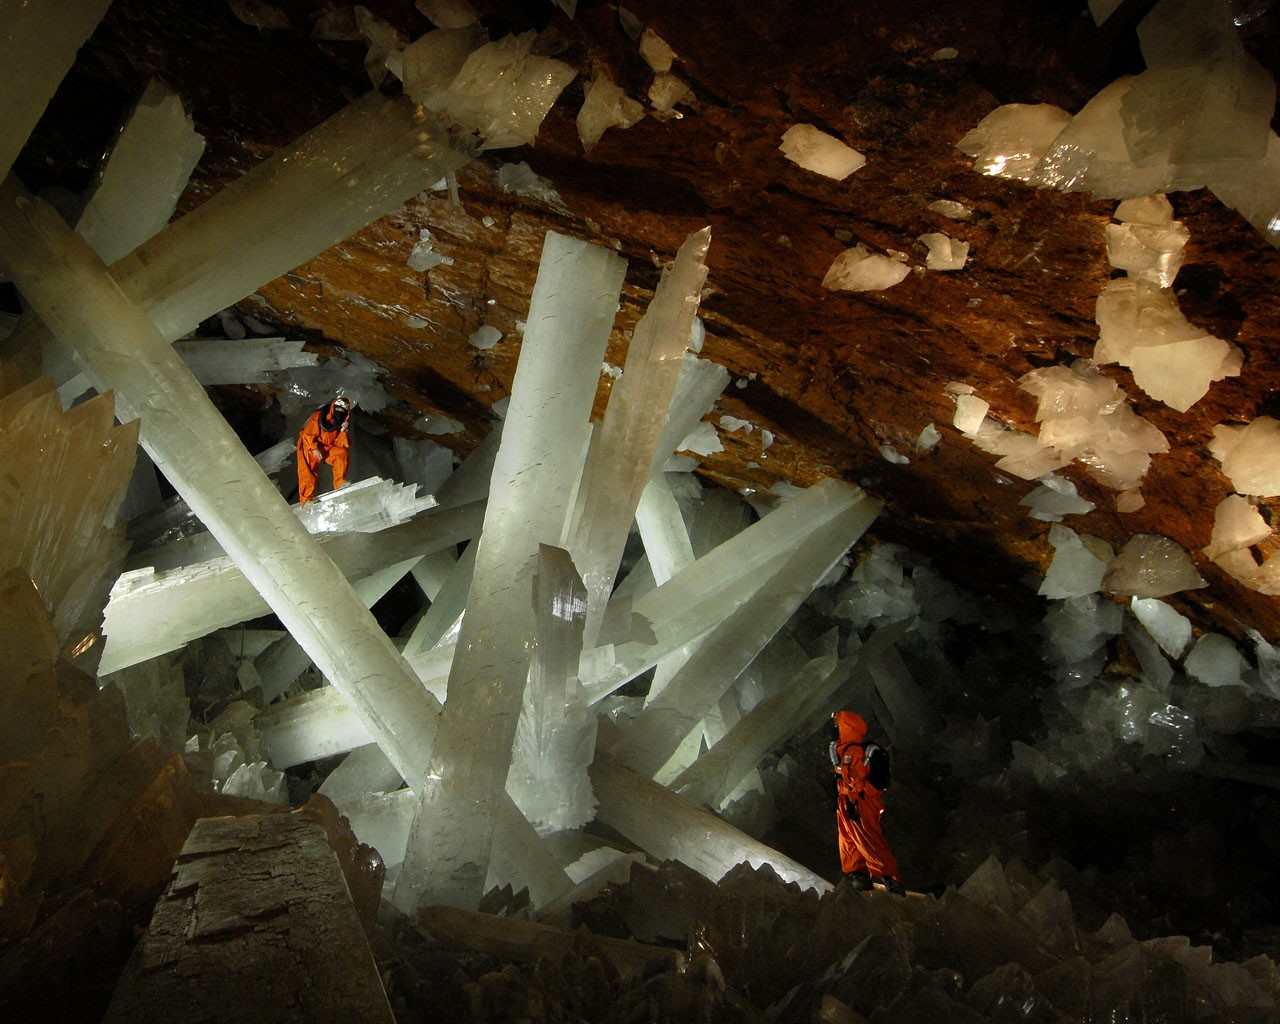 Crystal Cave Pictures via